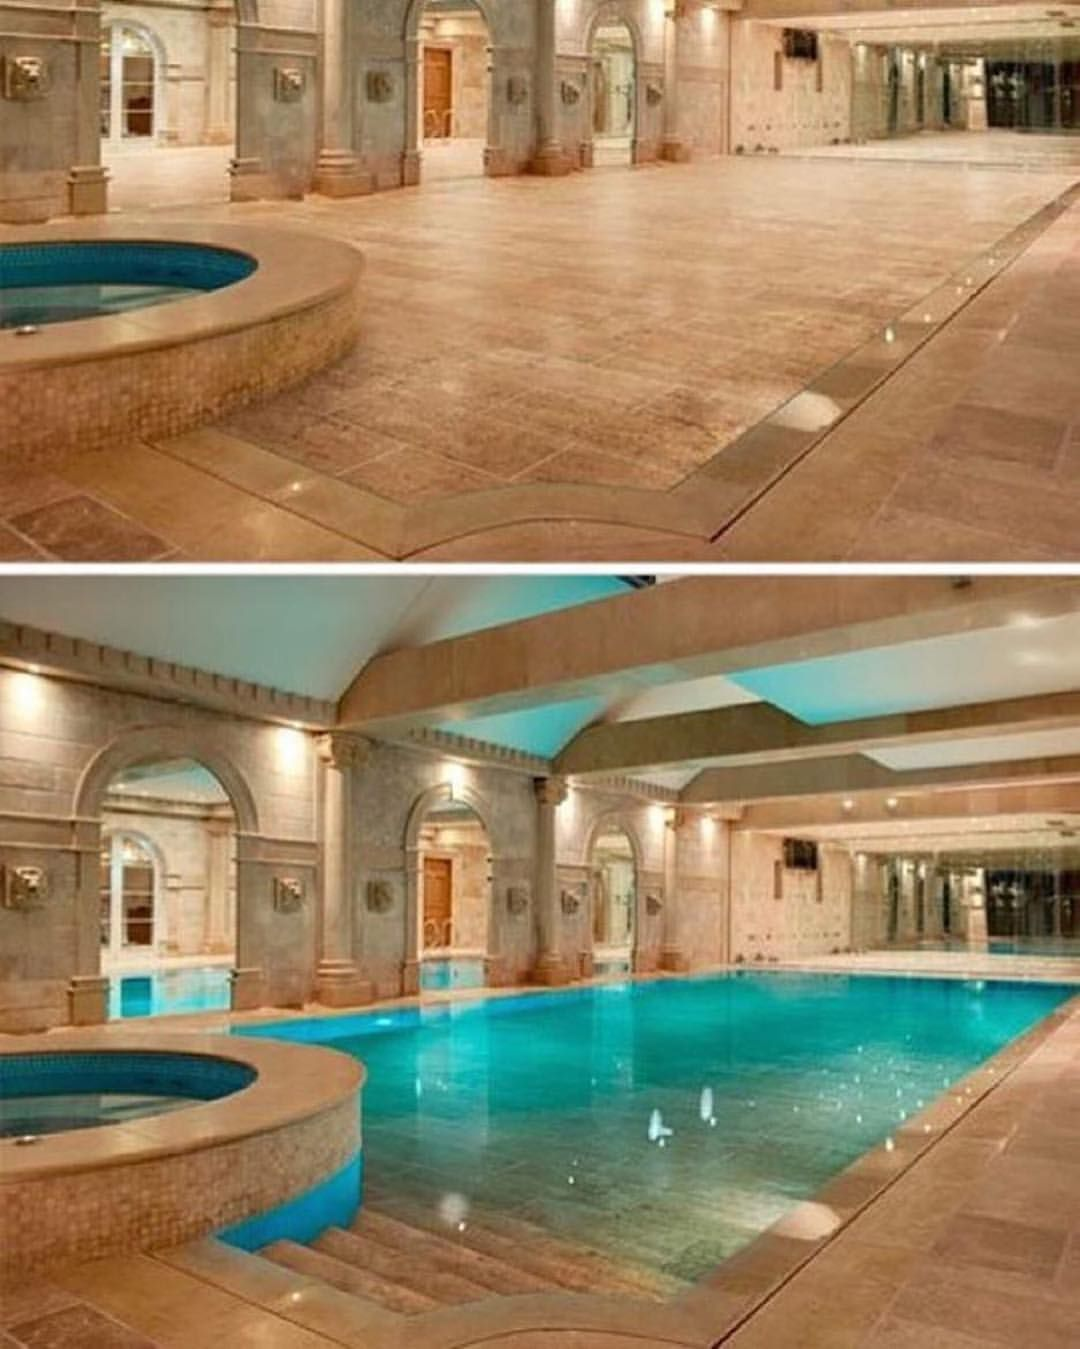 Coolest Home Pool Ever